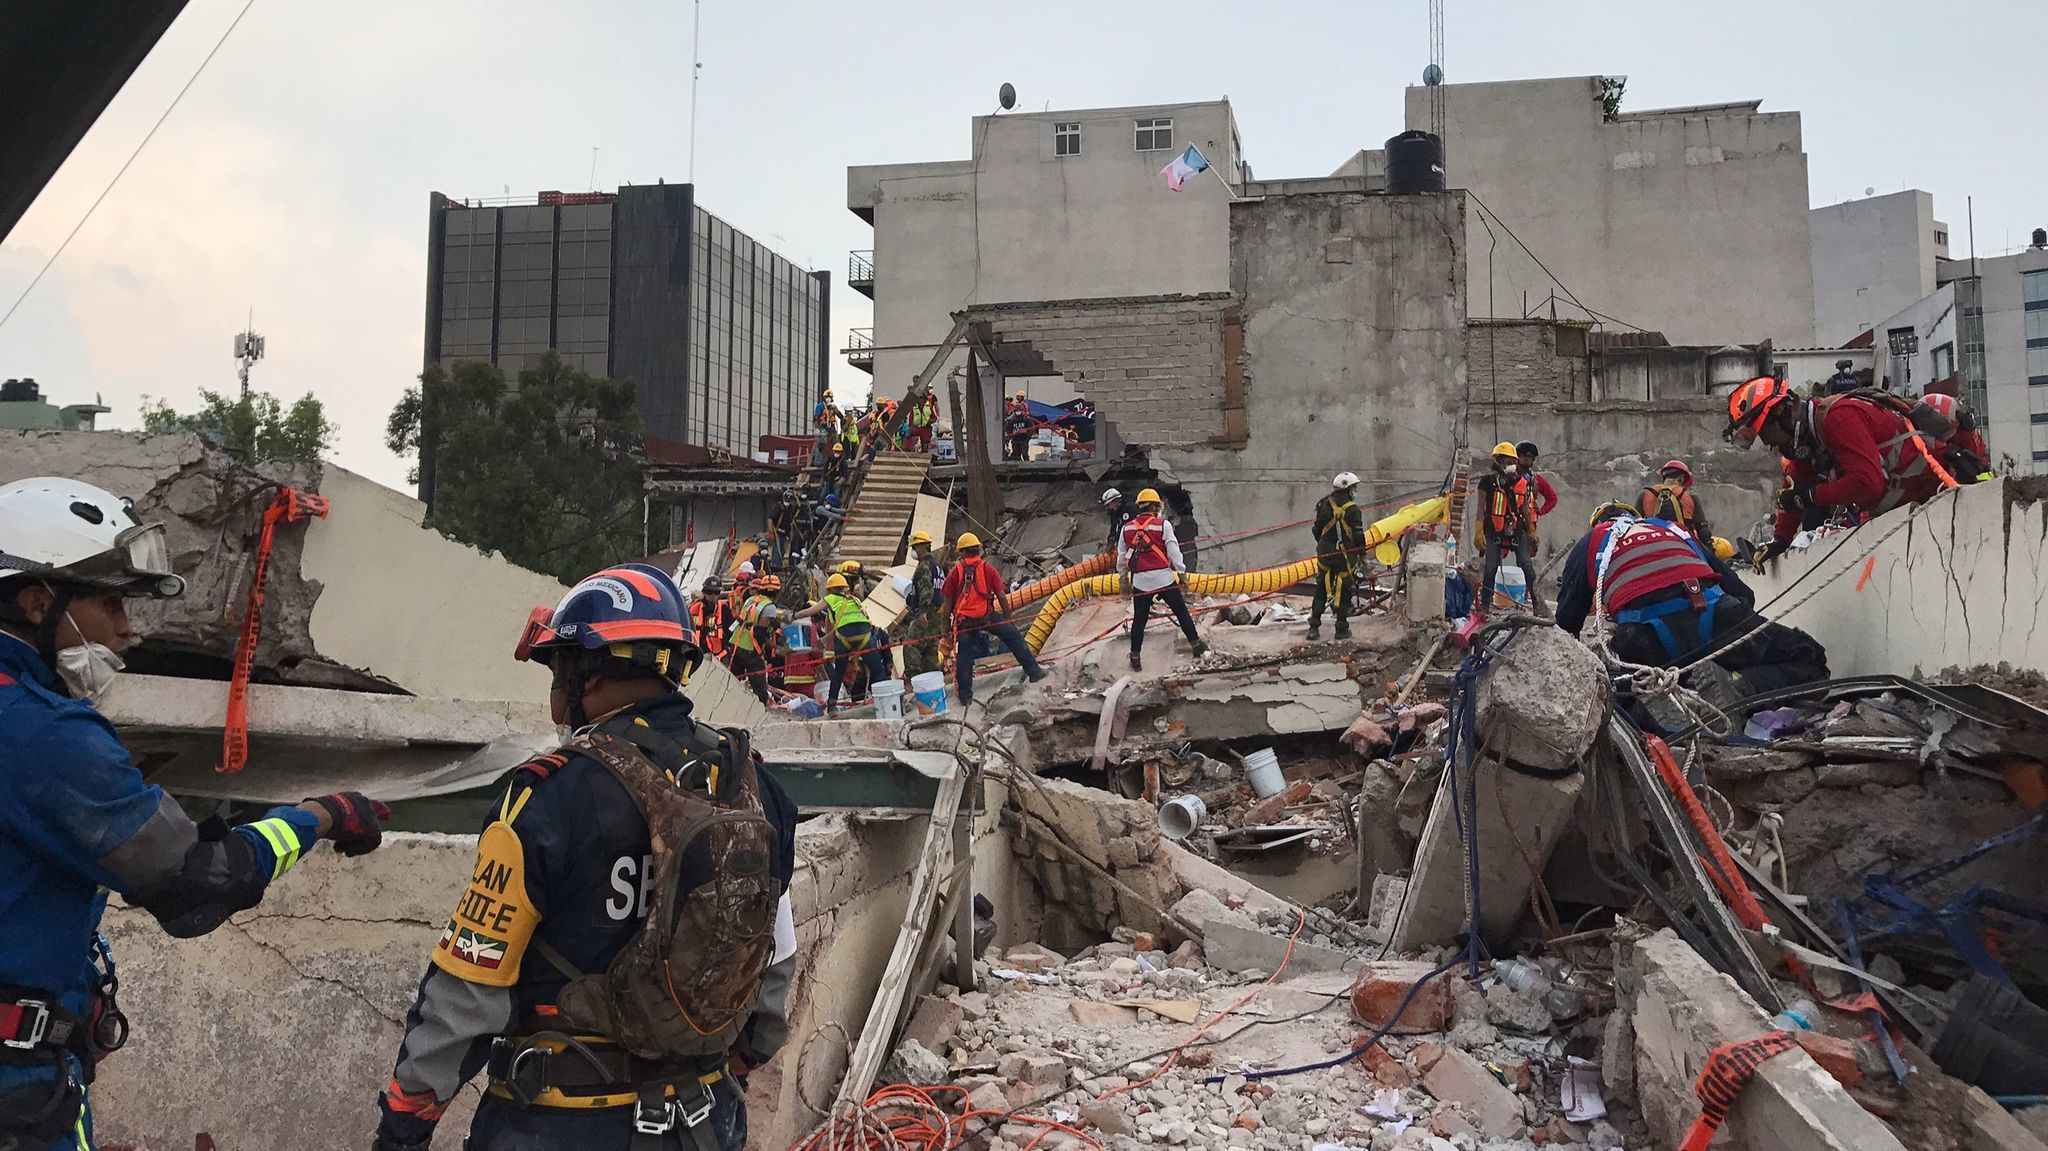 Emergency workers continue the recovery effort from the roof of the office building at Avenida Alvaro Obregon 286.